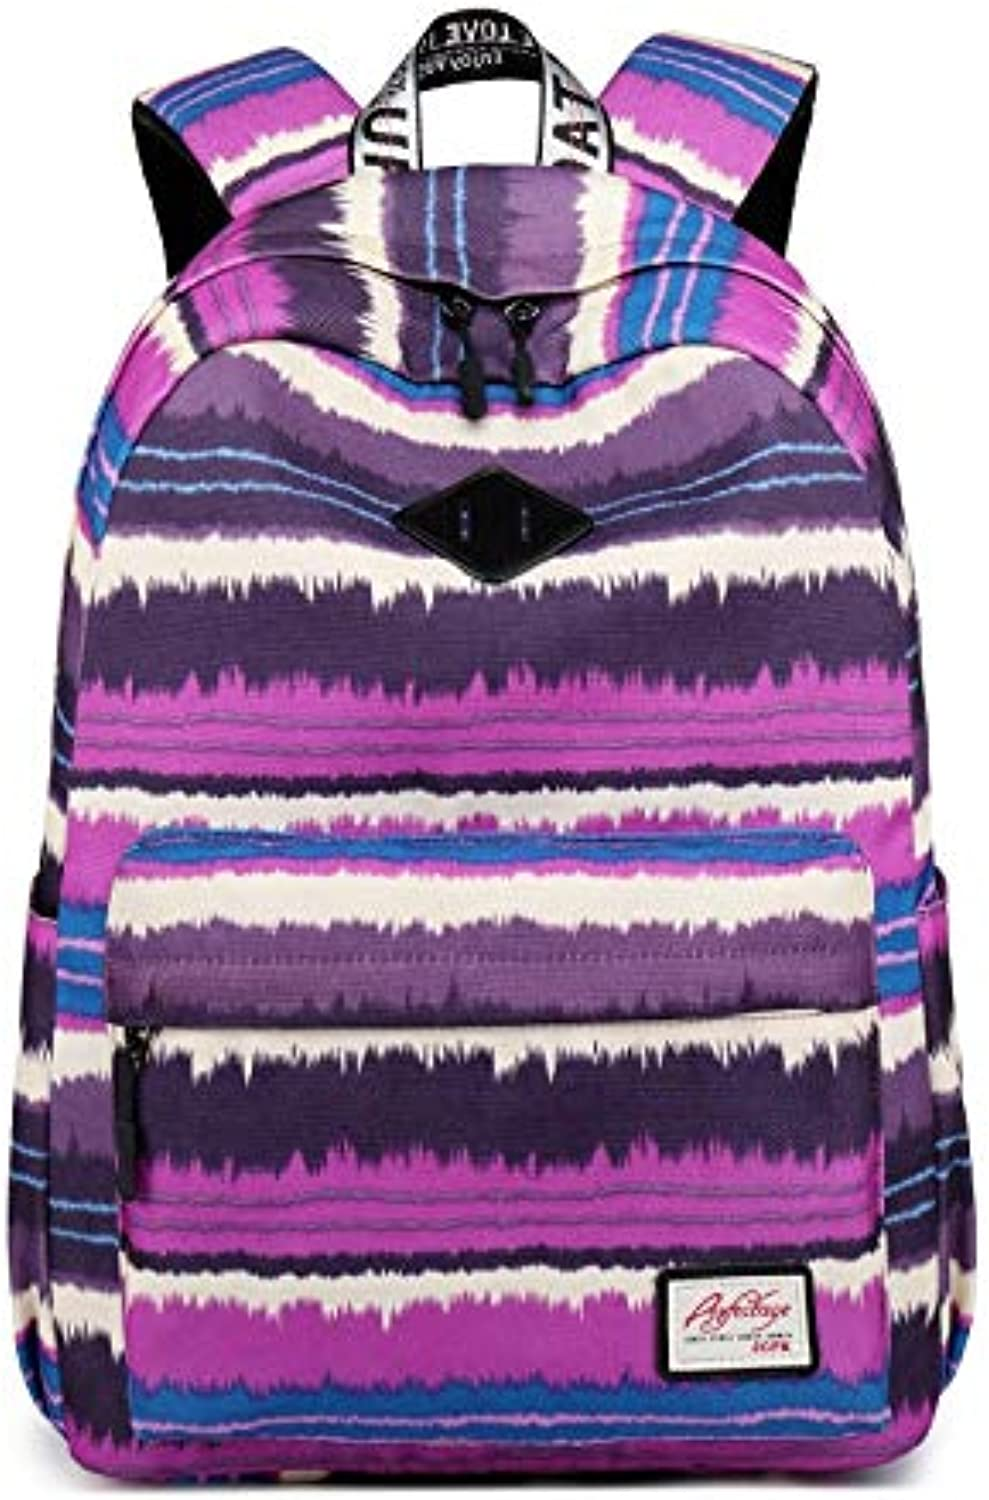 Wangxiangzheng Striped Canvas Backpack Female Student Bag Leisure Travel Backpack Computer Bag (color   Purple)